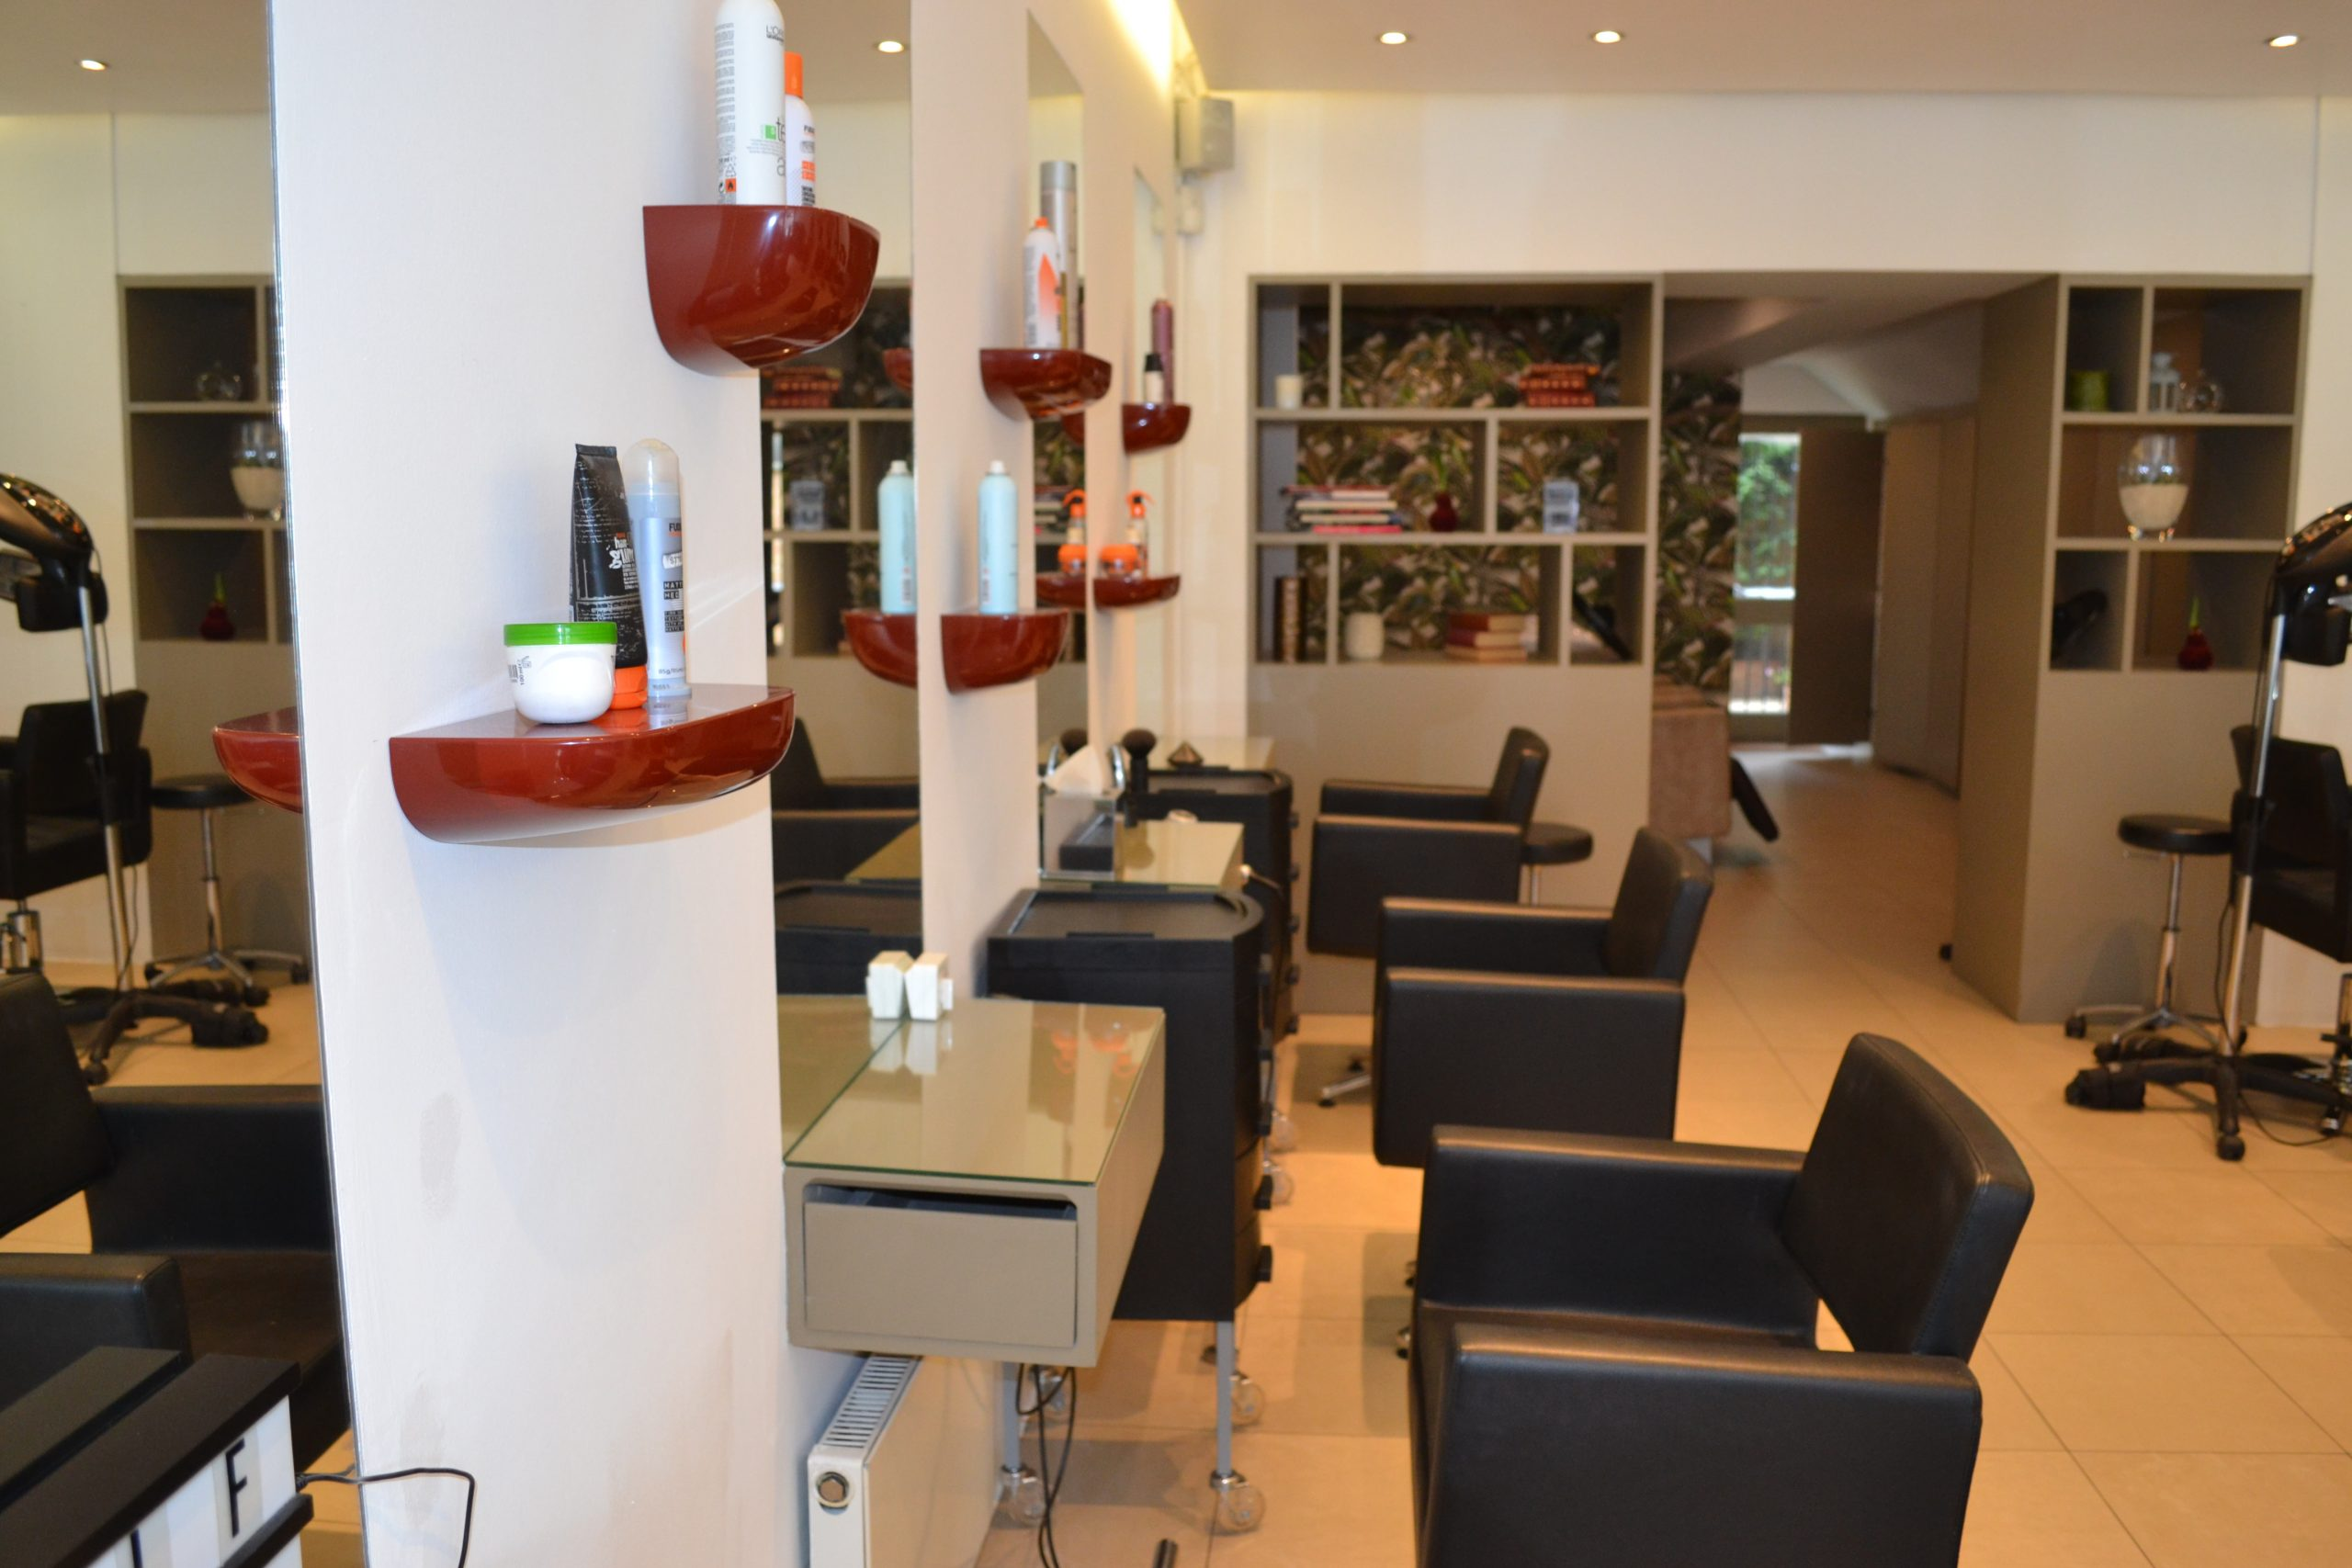 camerini hair salon